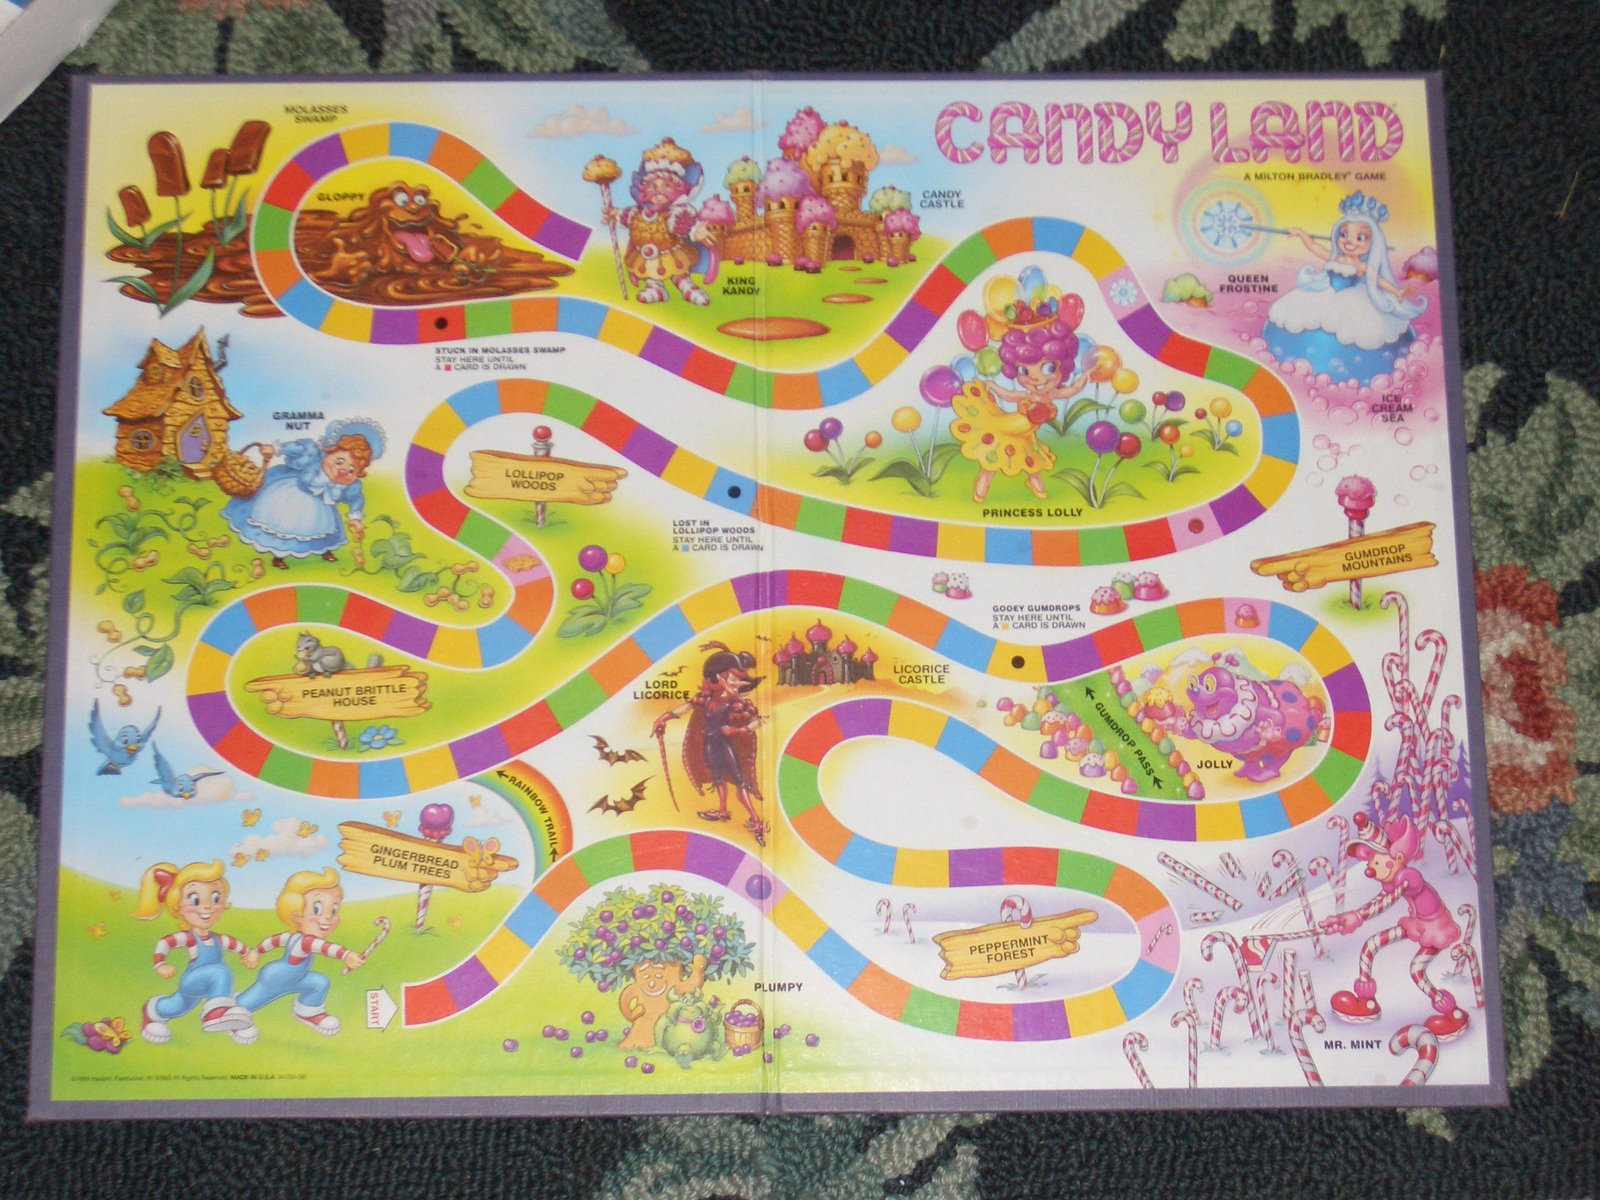 Kicked Out Of Candyland The Mysterious Disappearance Plumpy